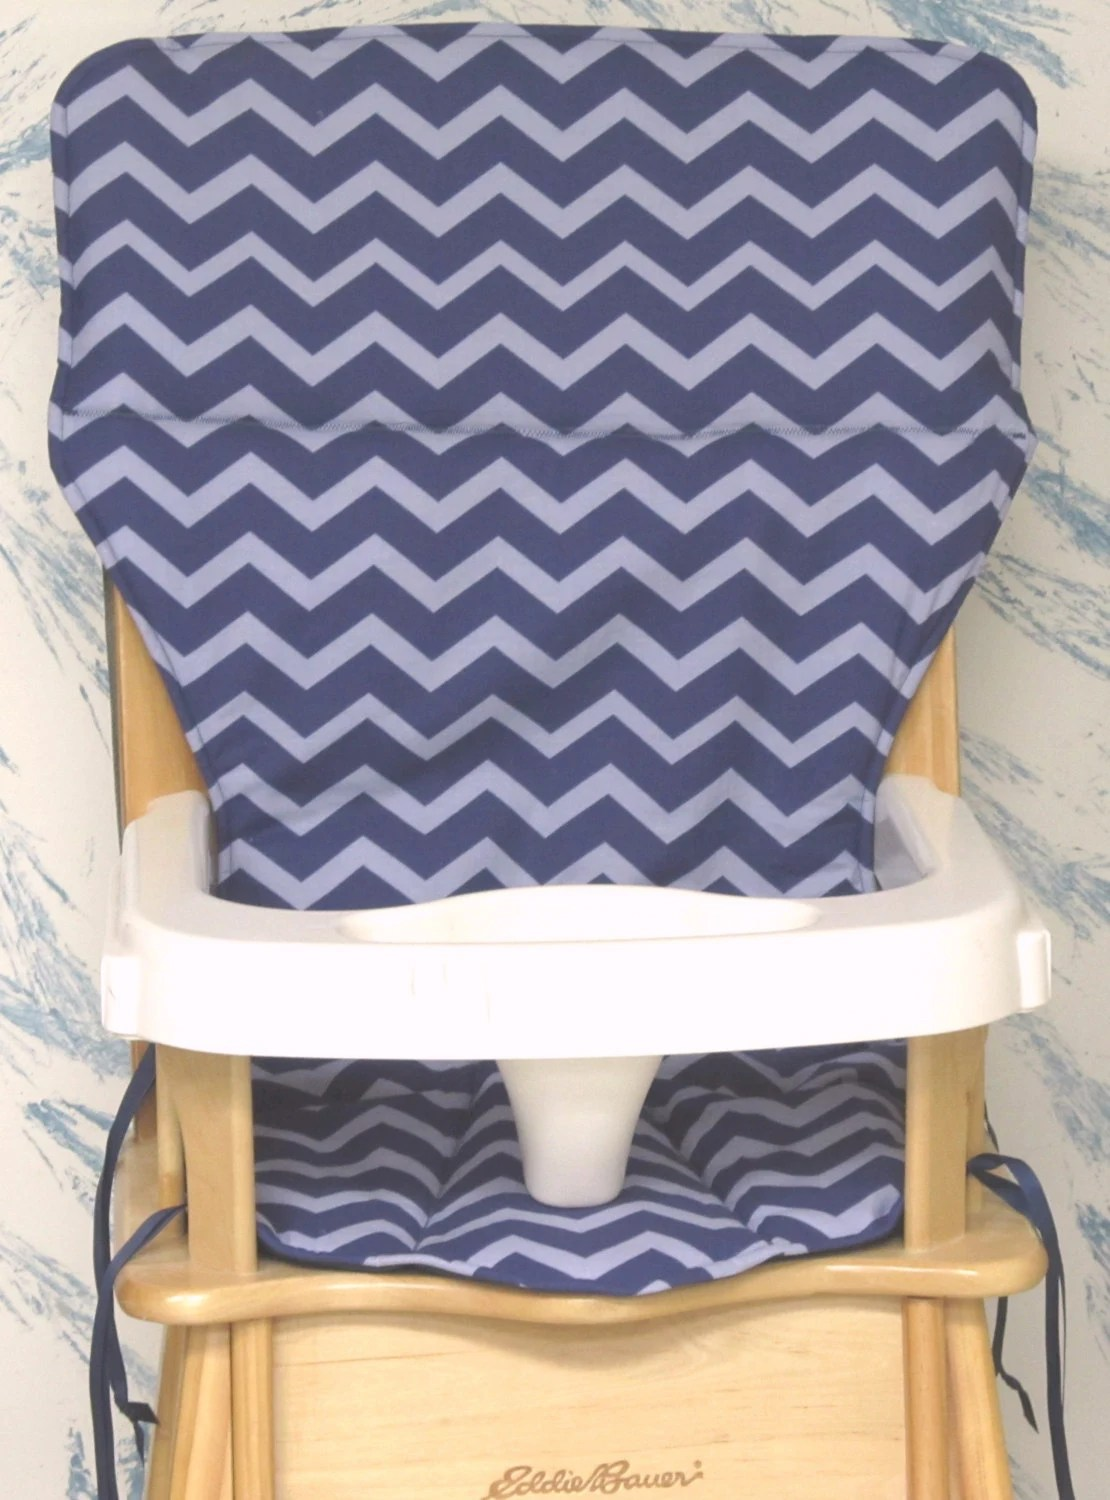 High Chair Covers Eddie Bauer High Chair Pad Replacement Cover Zigzagtone On